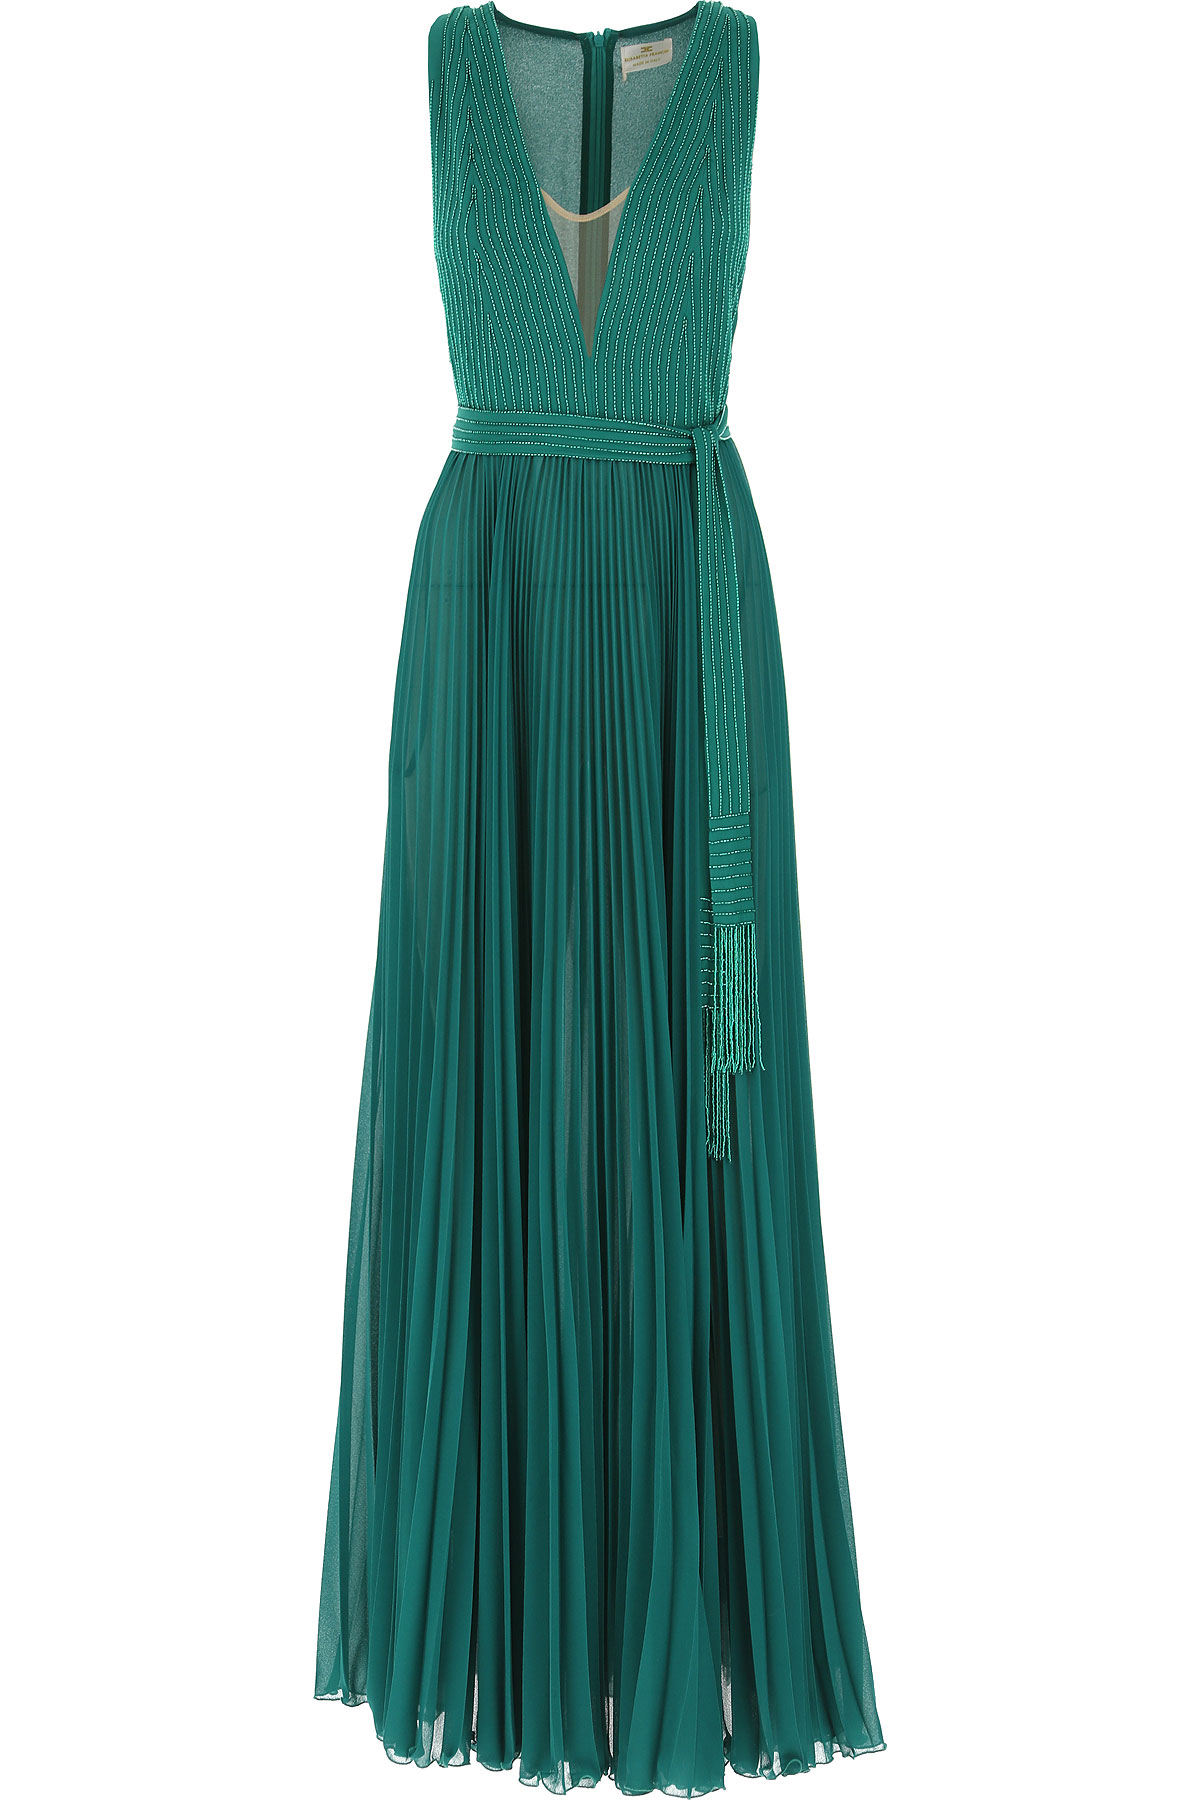 Elisabetta Franchi Dress for Women, Evening Cocktail Party On Sale, Emerald Green, polyestere, 2019, 4 6